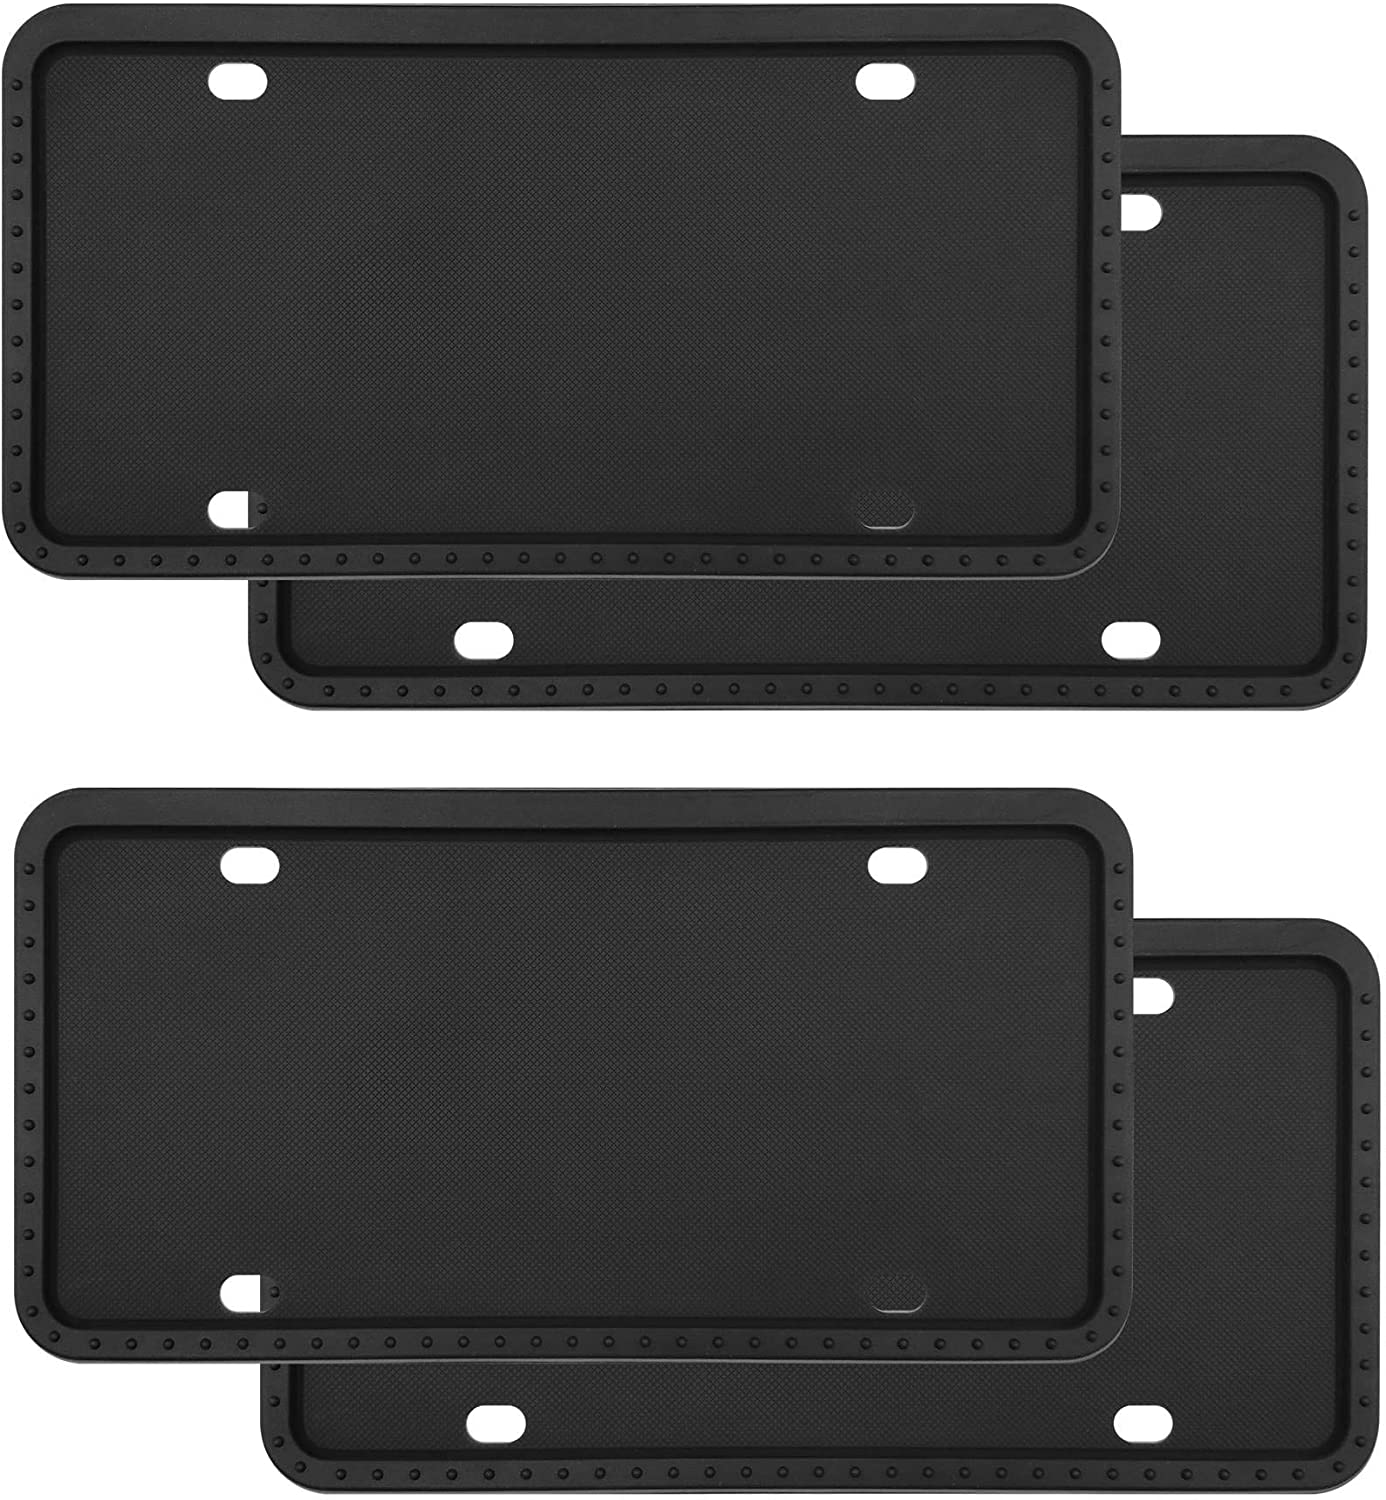 Rust-Proof,Rattle-Proof for Car License Plate Frame NICEASY 4 Pack Universal Silicone License Plate Frame,License Plate Holder,with Drainage Holes,Weather-Proof